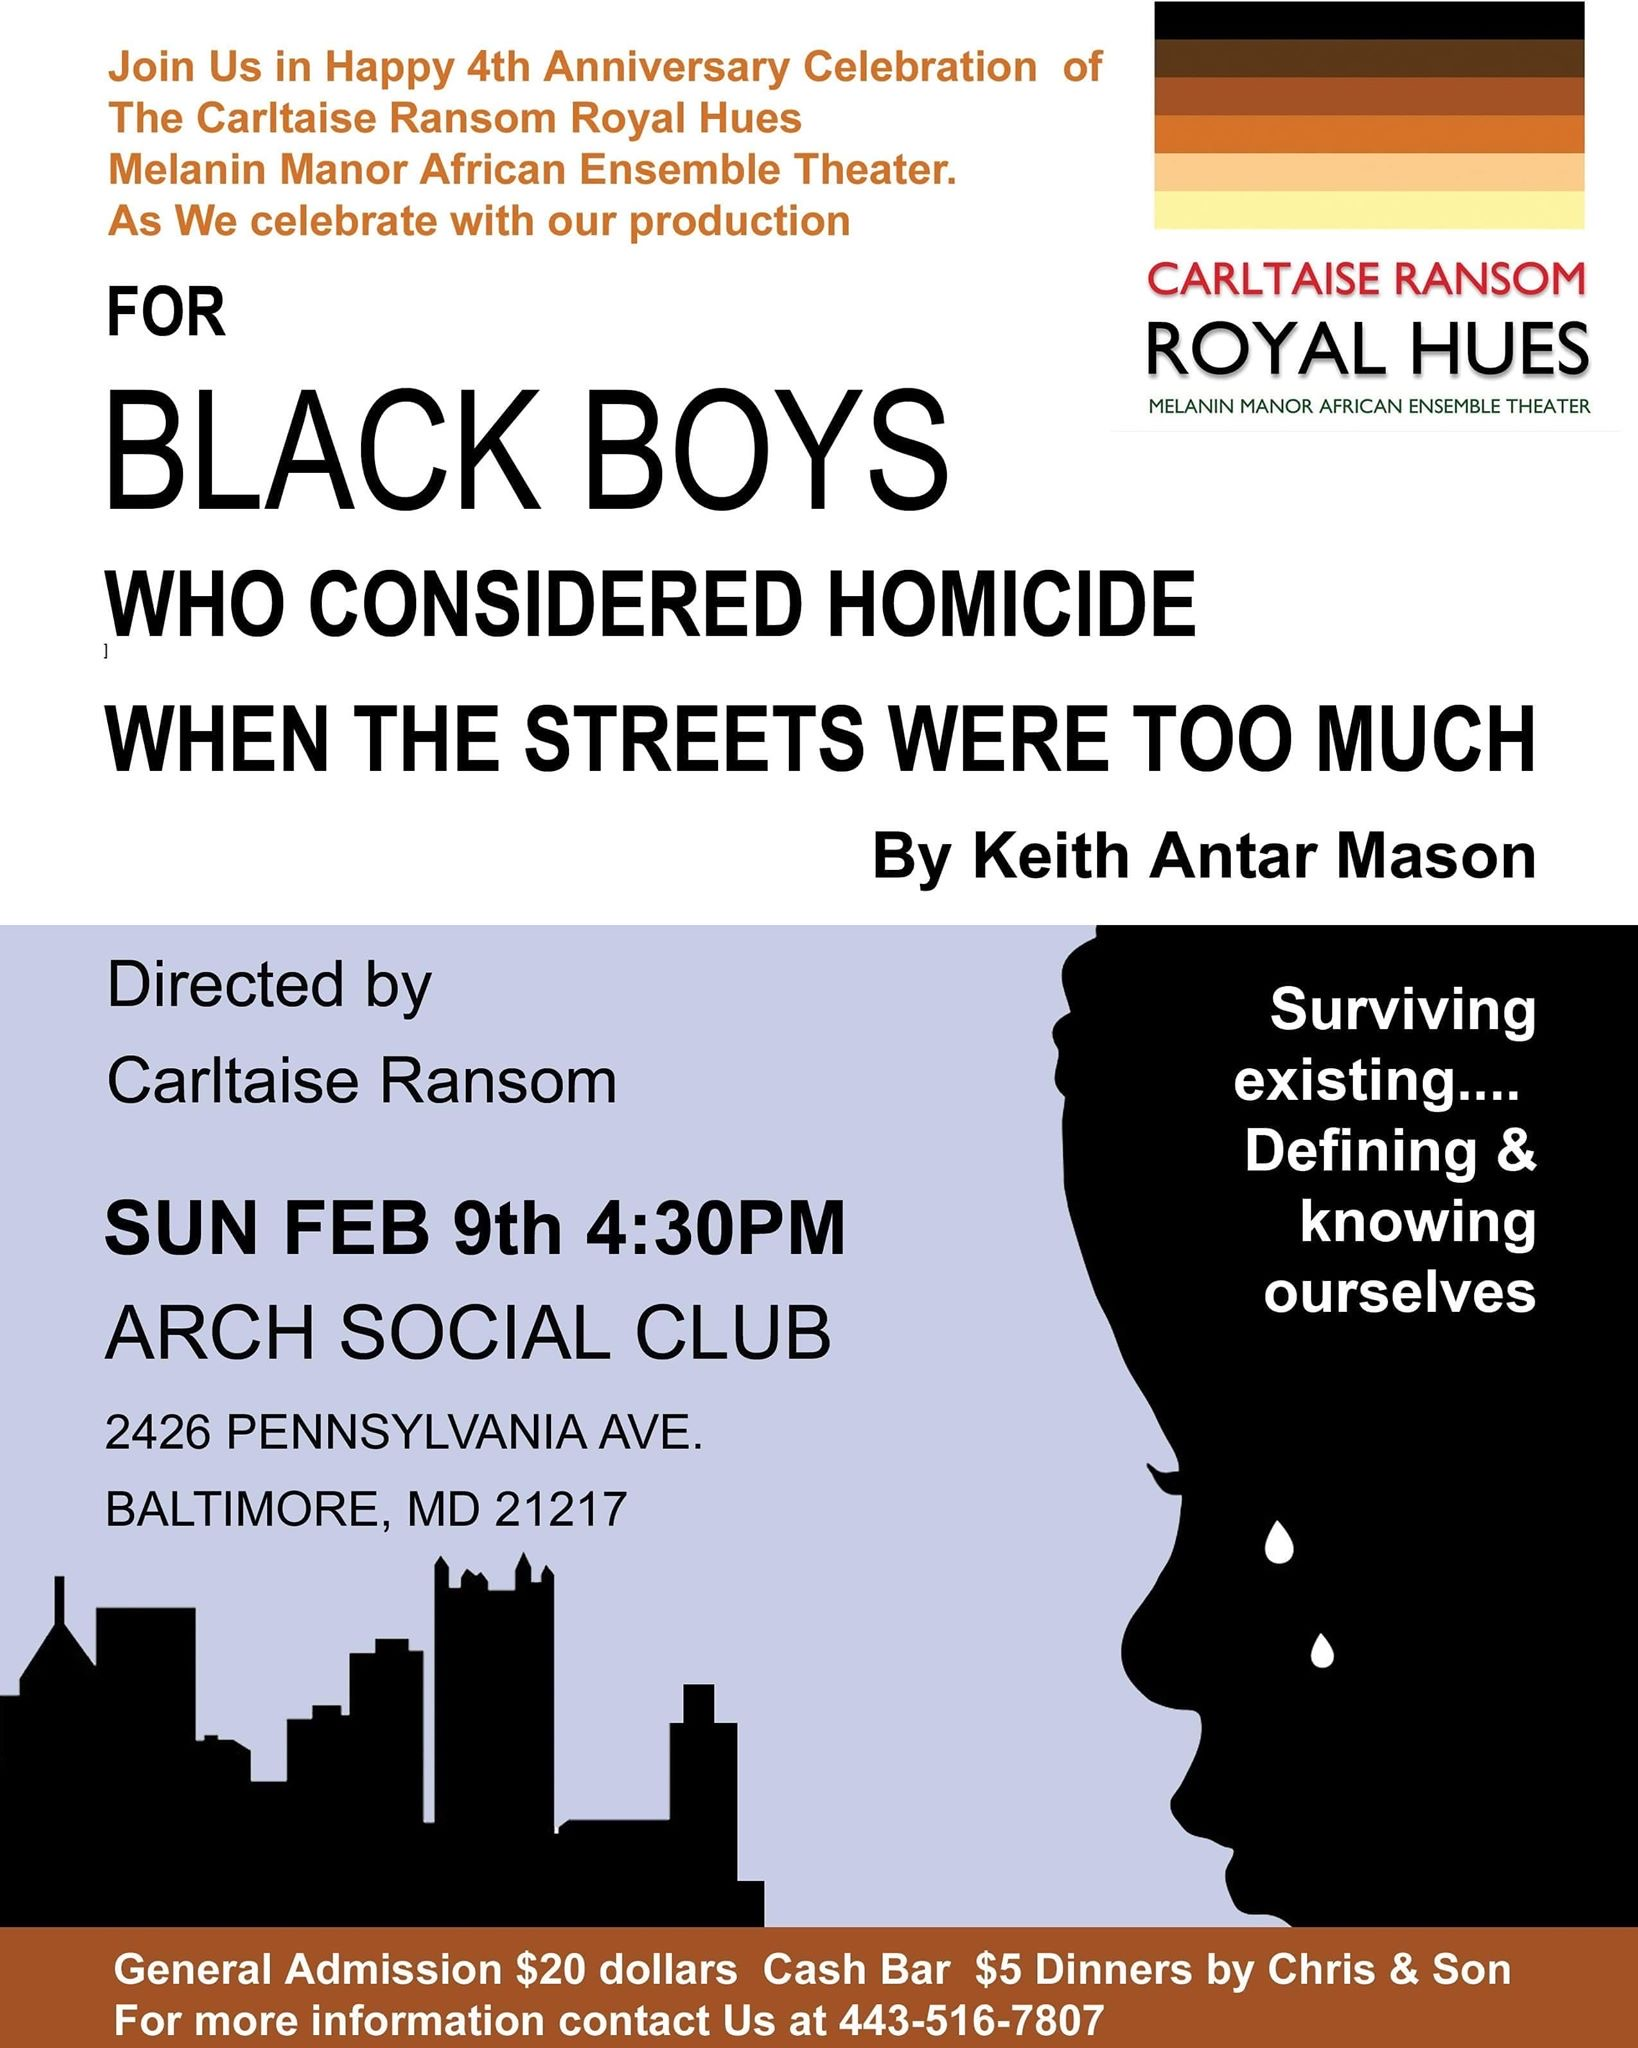 For Black Boys Who Considered Homicide When The Streets Were Too Much